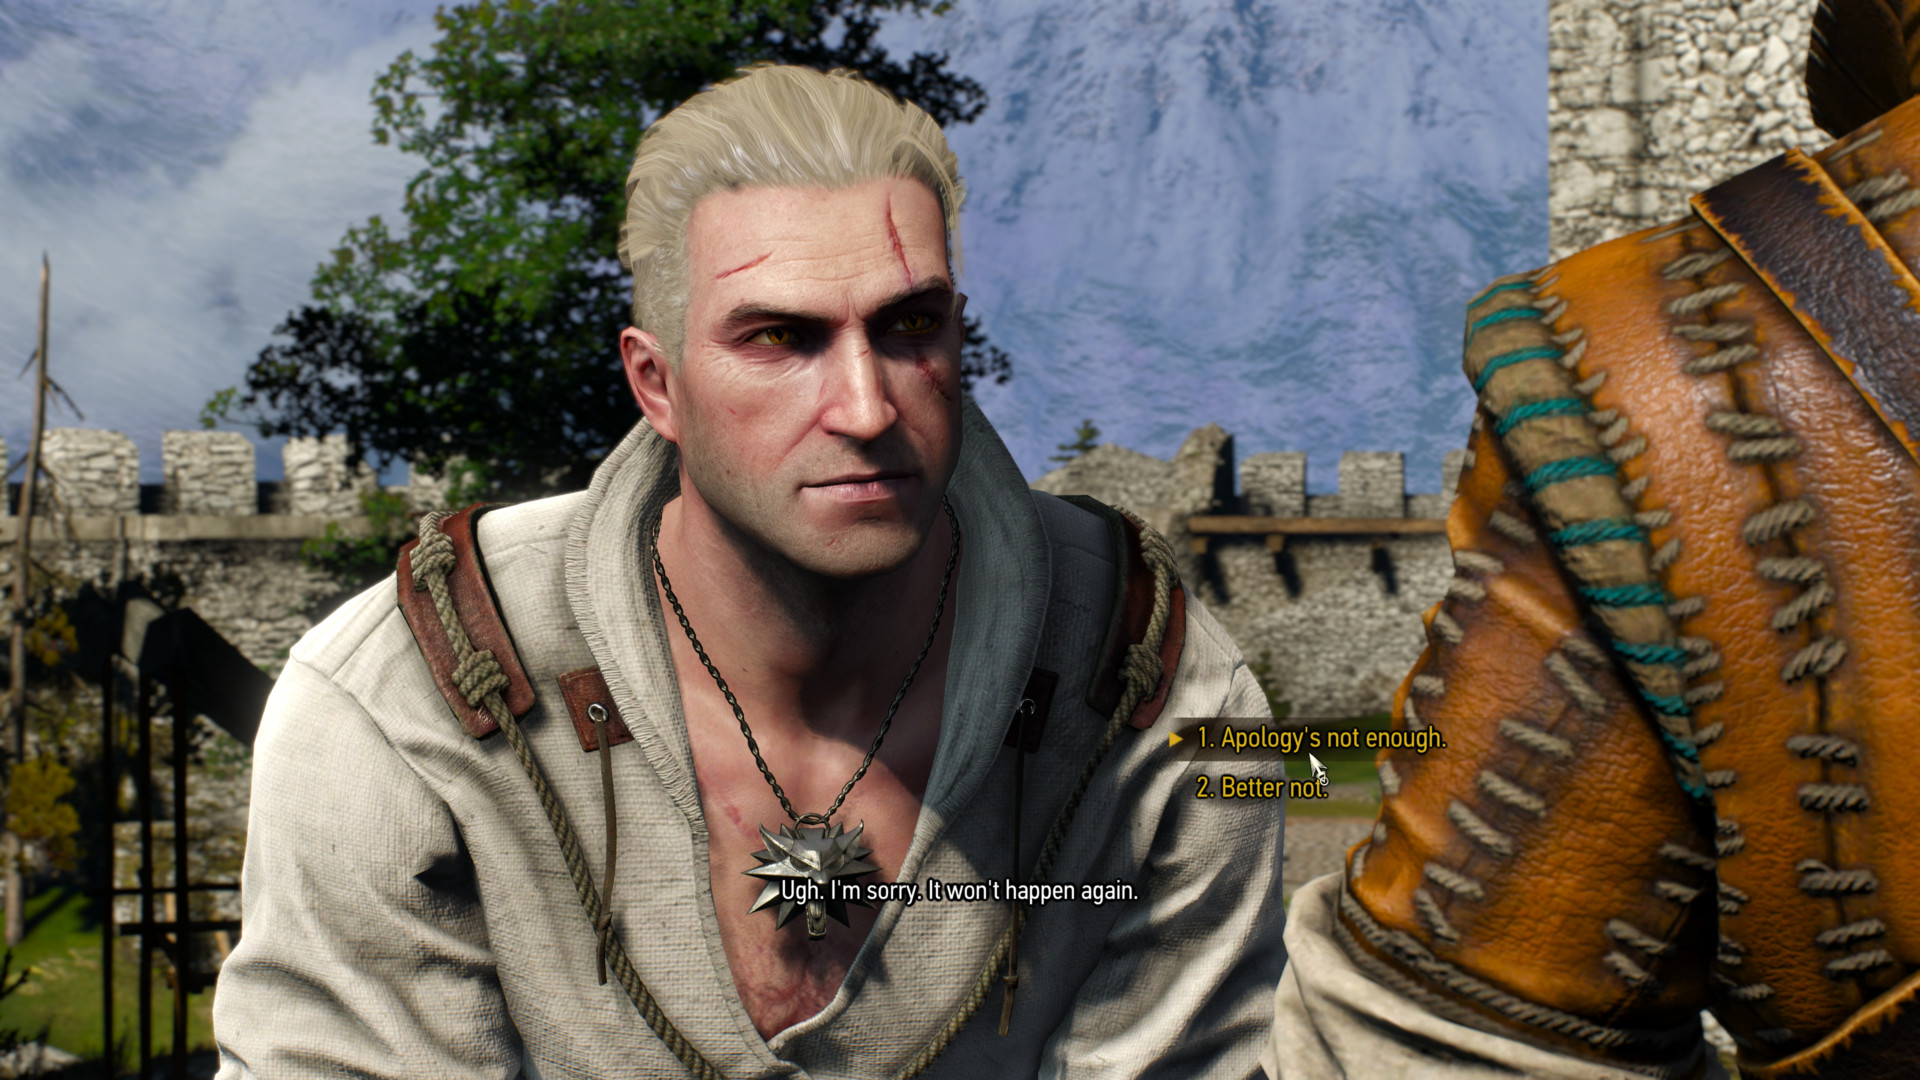 Dialogue screenshot of The Witcher 3: Wild Hunt video game interface.